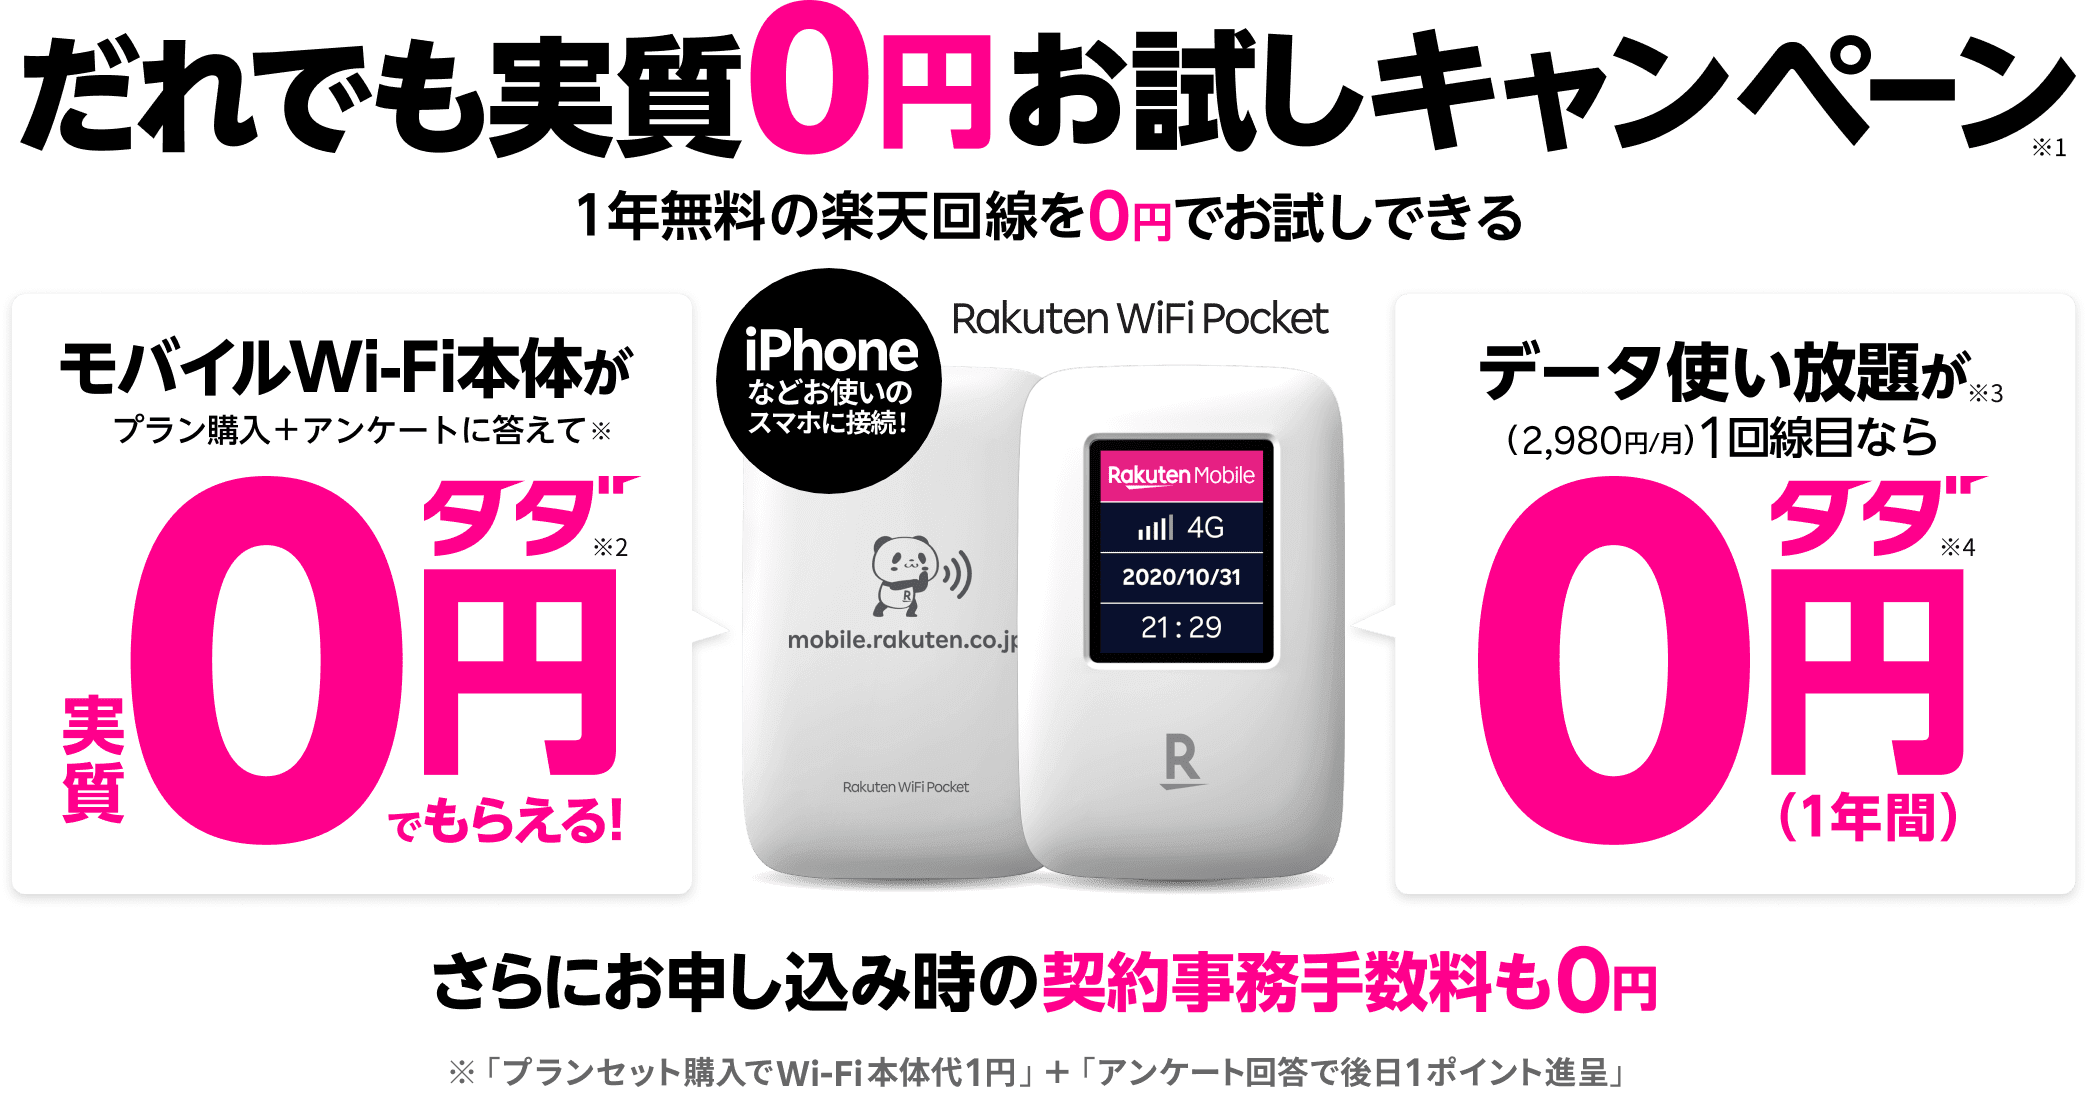 rakuten-wifi-pocket-campaign